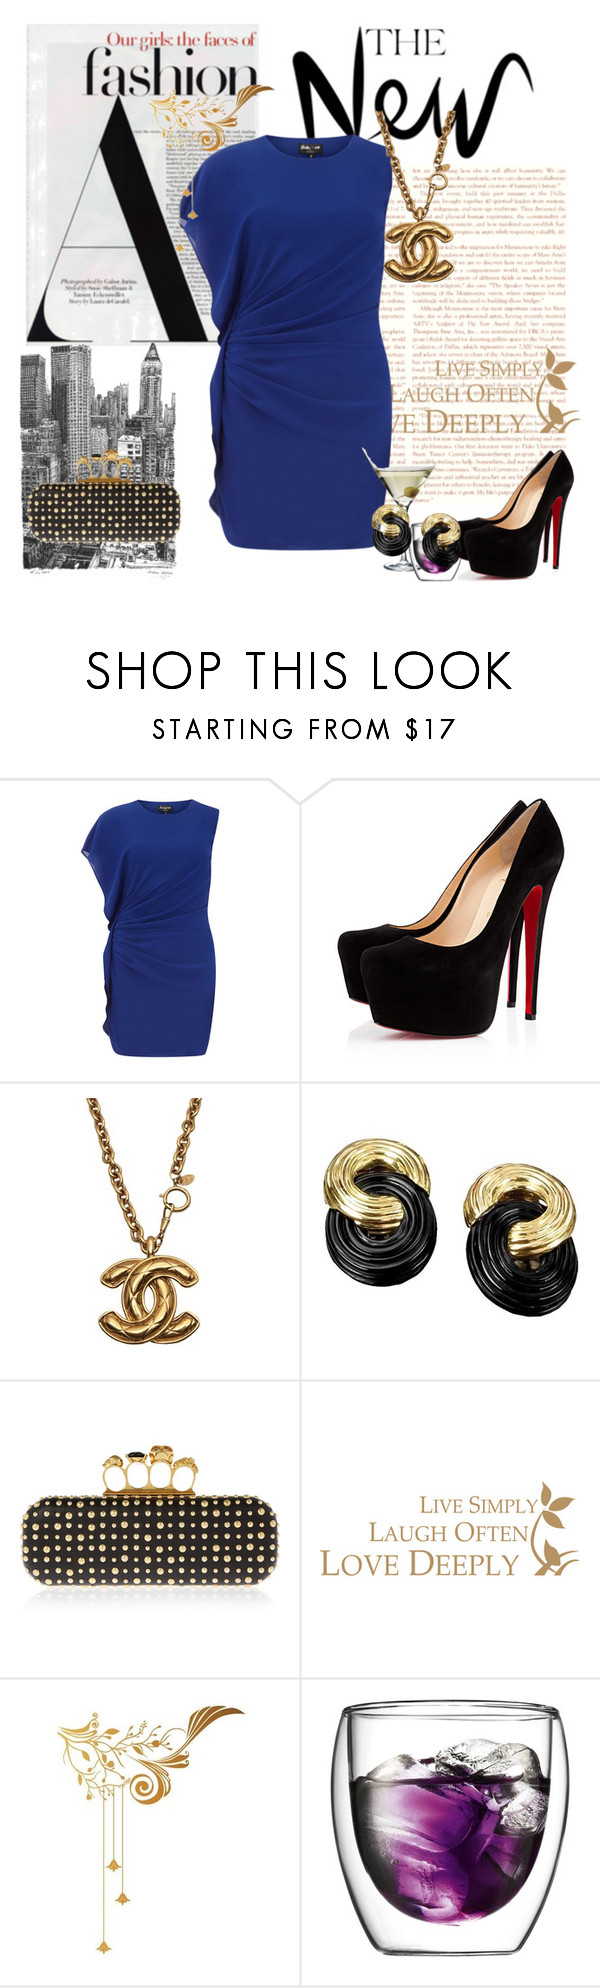 """""""Cocktail Party Chic"""" by chap6020 ❤ liked on Polyvore featuring moda, Dorothy Perkins, Christian Louboutin, Chanel, Alexander McQueen, Industrie, Savant, Surface Collective, Eva Solo e Bodum"""